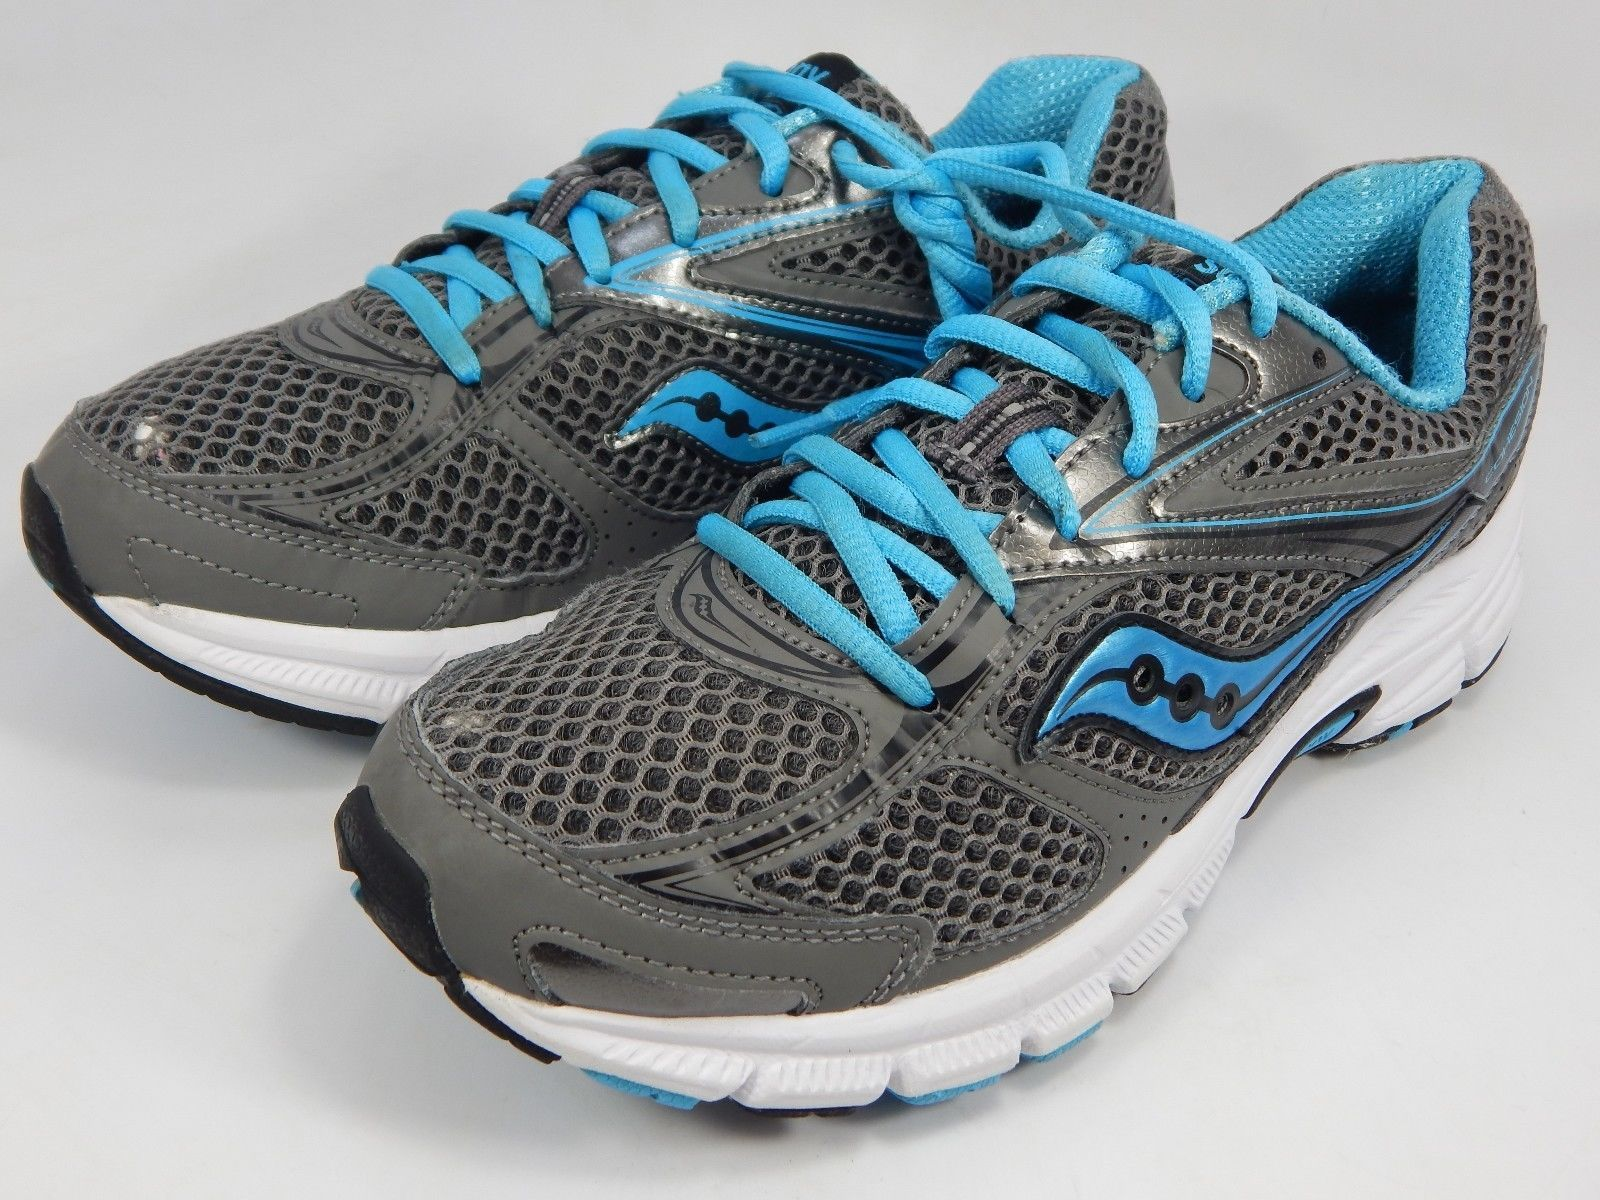 Saucony Cohesion 8 Women's Running Shoes Size US 8 M (B) EU 39 Gray S15218-12